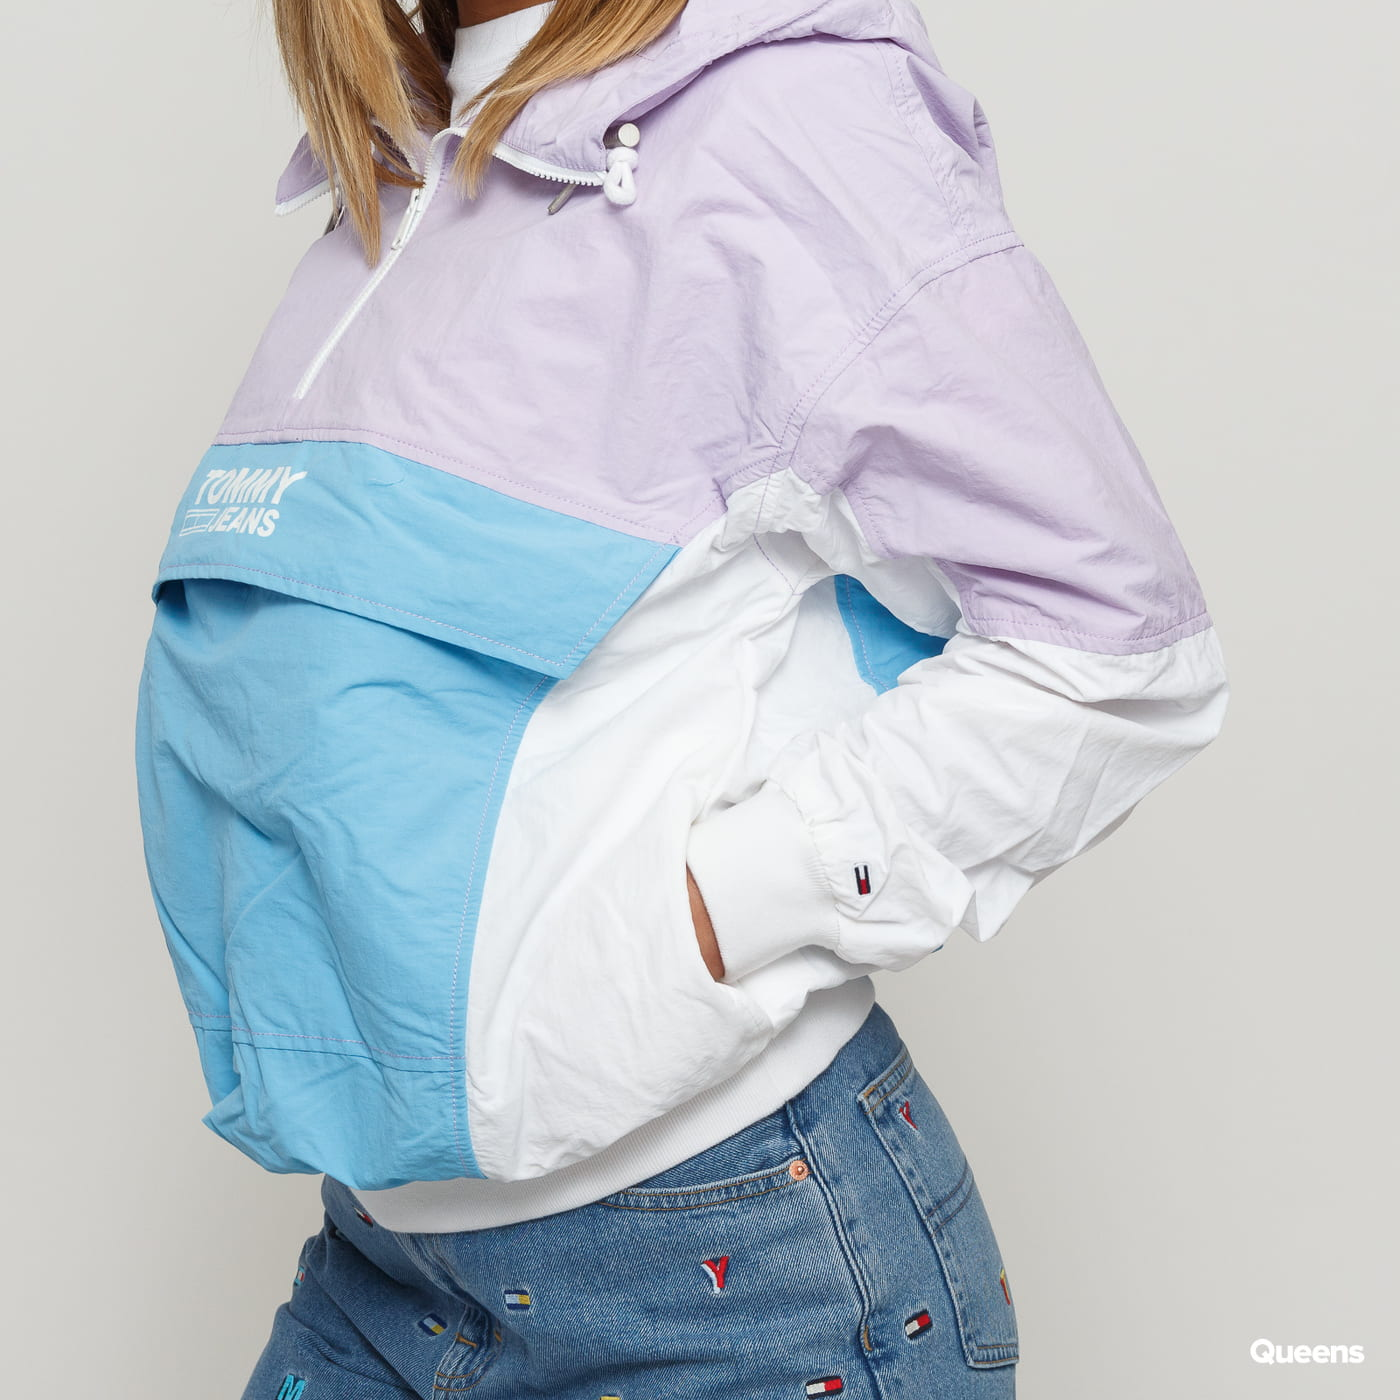 TOMMY JEANS TJW Retro Colorblock Popover light purple / light blue / white